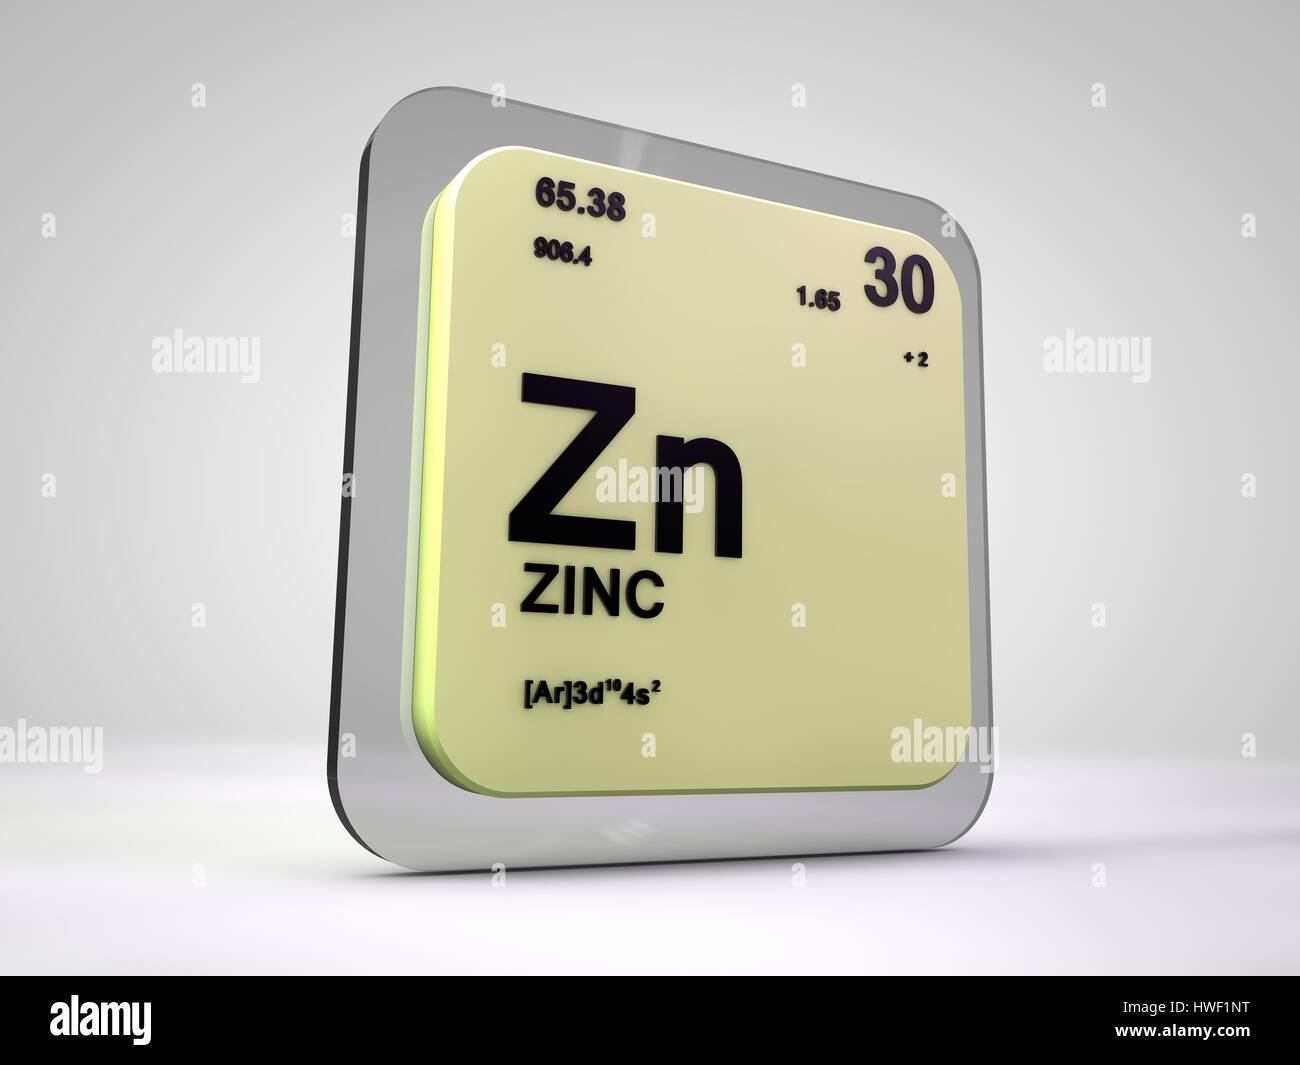 Zinc zn chemical element periodic table 3d render stock photo stock photo zinc zn chemical element periodic table 3d render gamestrikefo Image collections